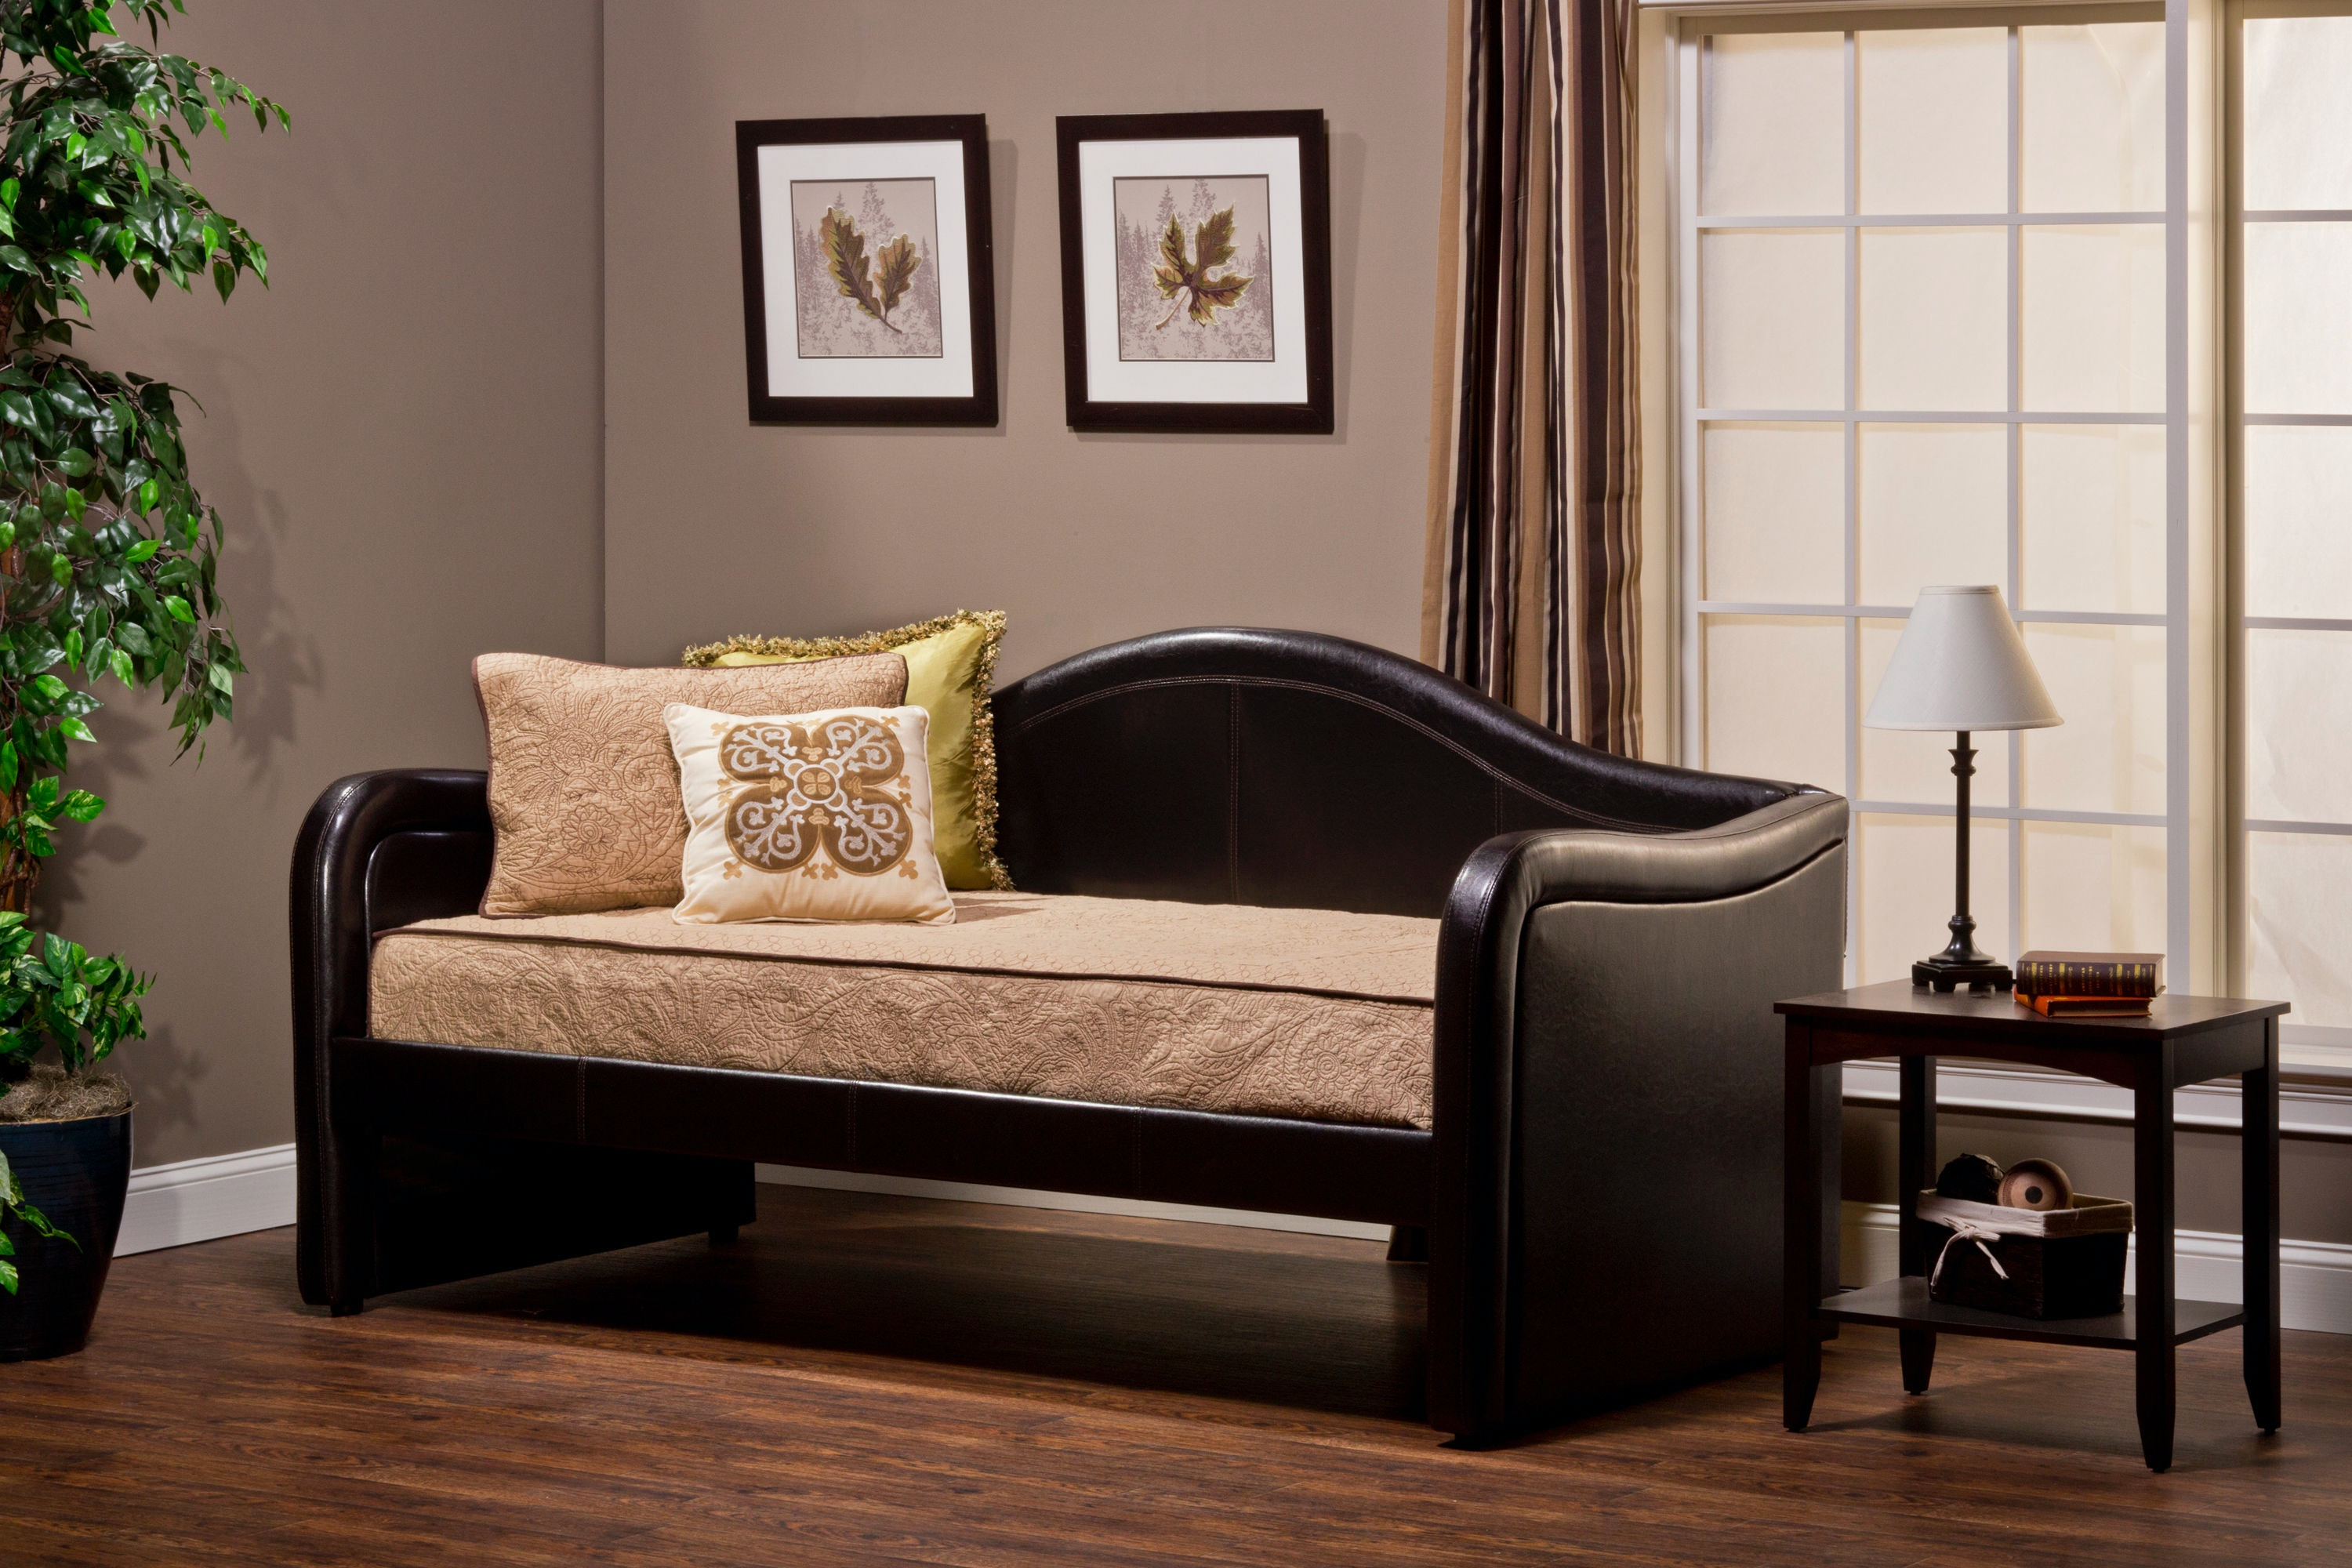 Hillsdale Furniture Bedroom Brenton Daybed 1719DB   Carol House Furniture    Maryland Heights And Valley Park, MO